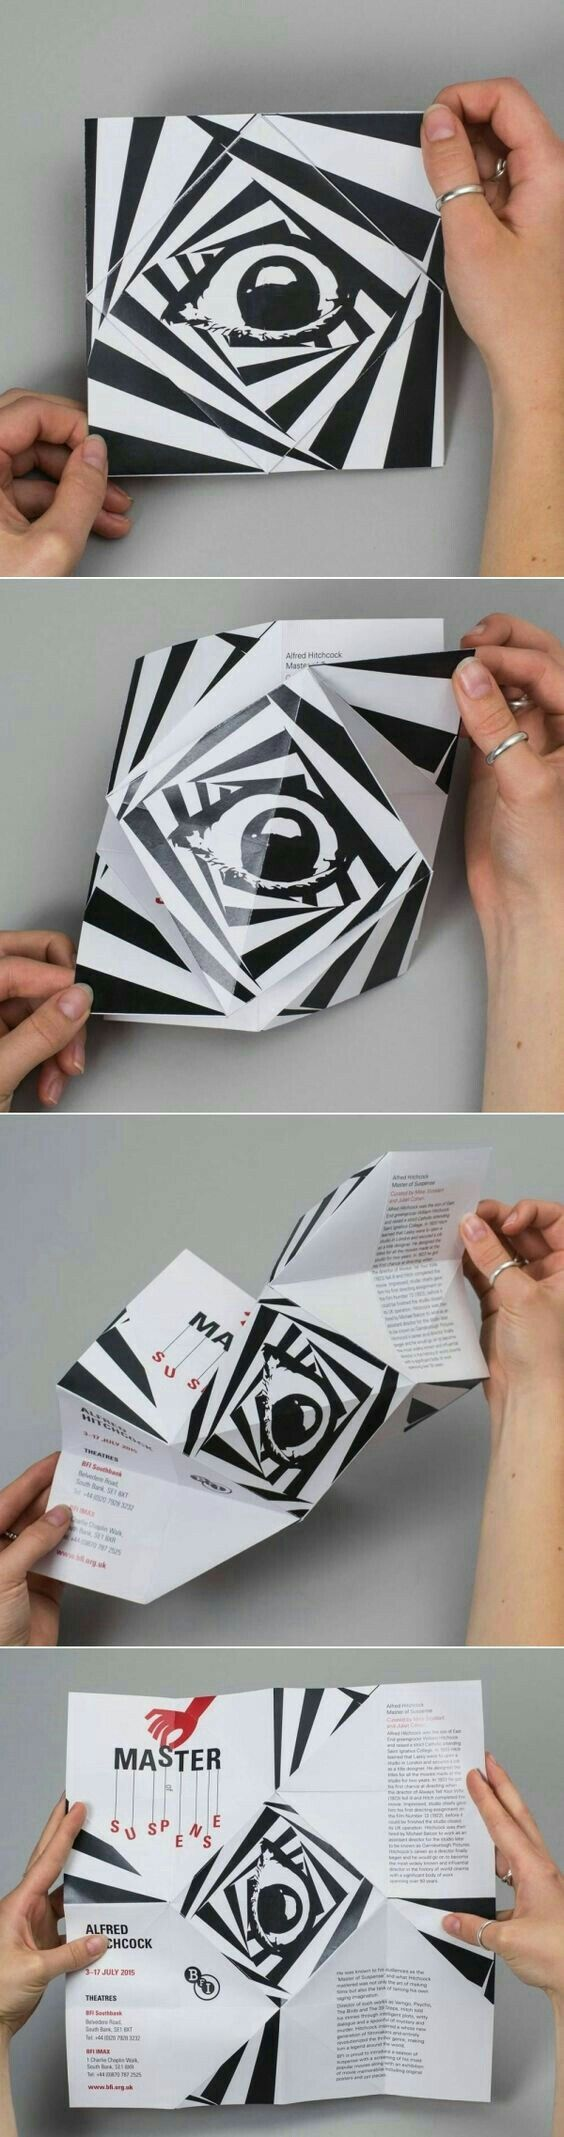 creative folding method